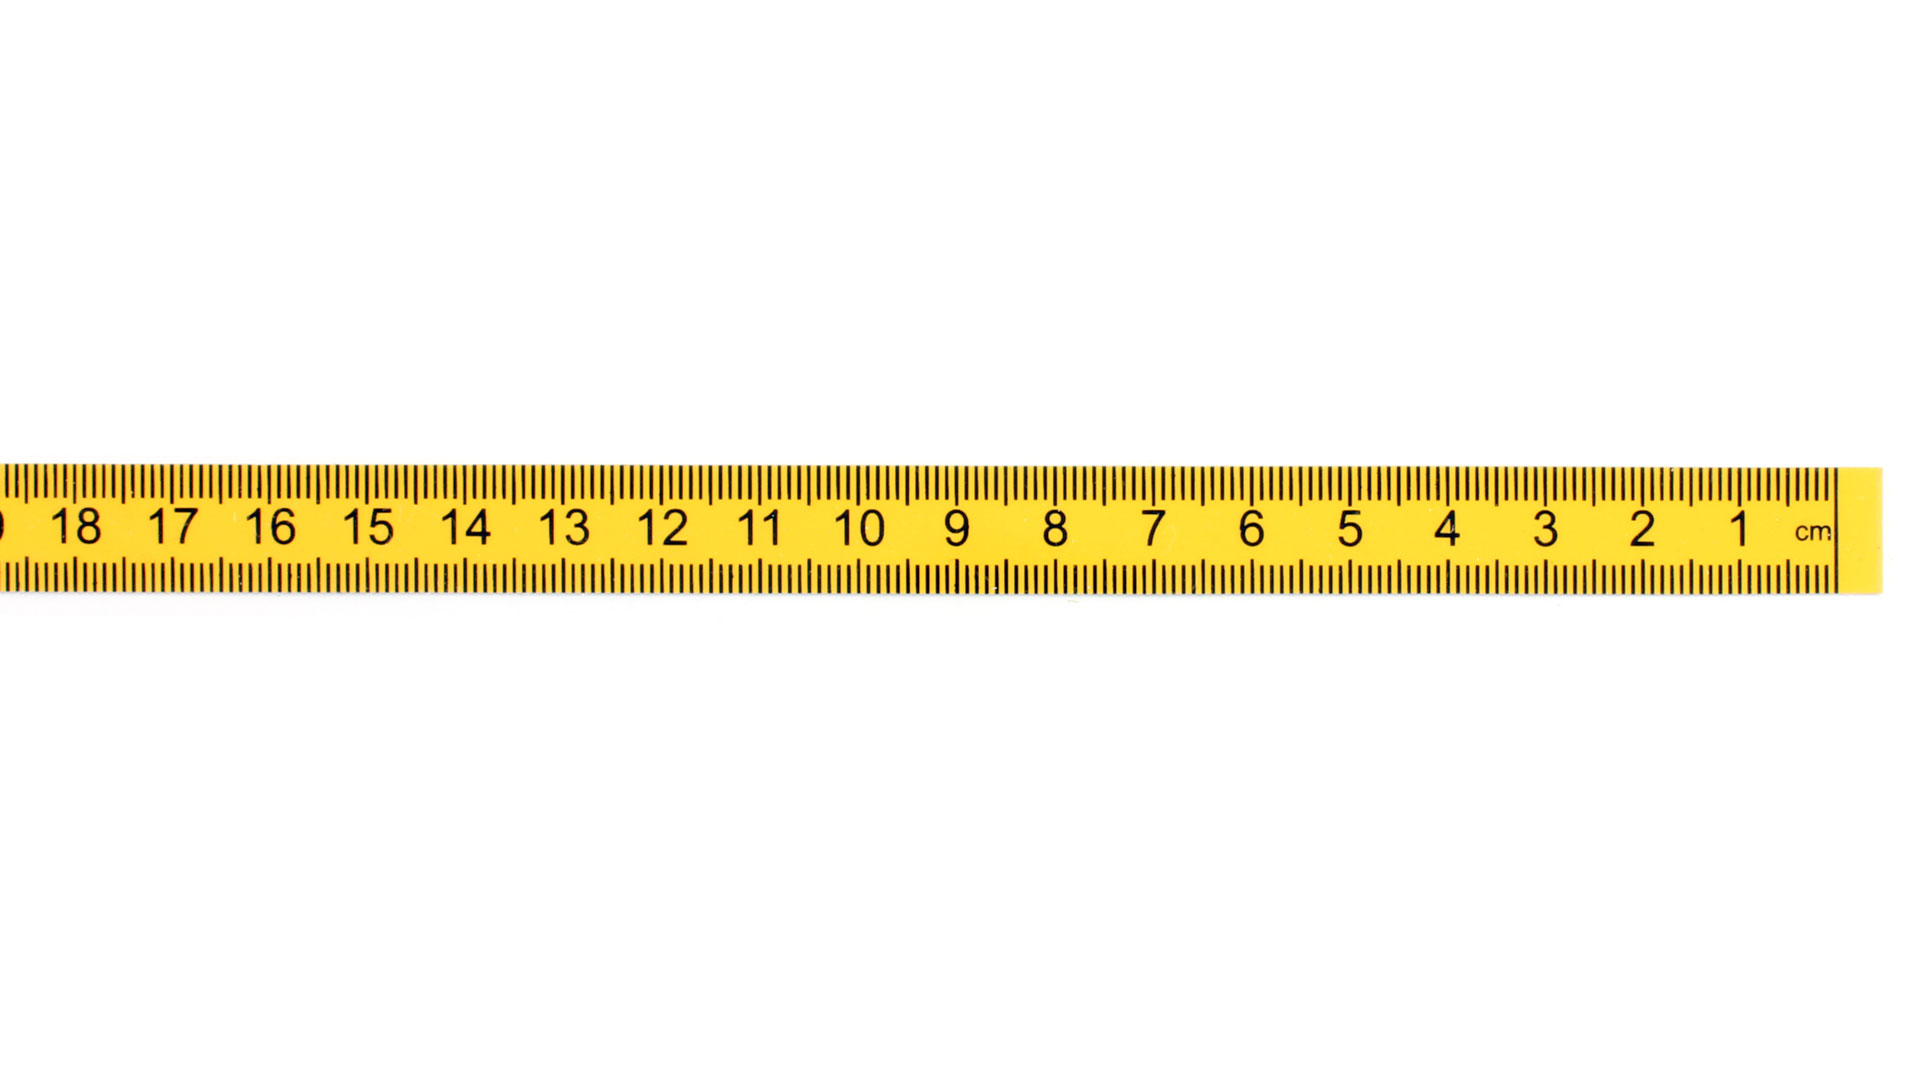 Adhesive Backed Plastic Measuring Tape